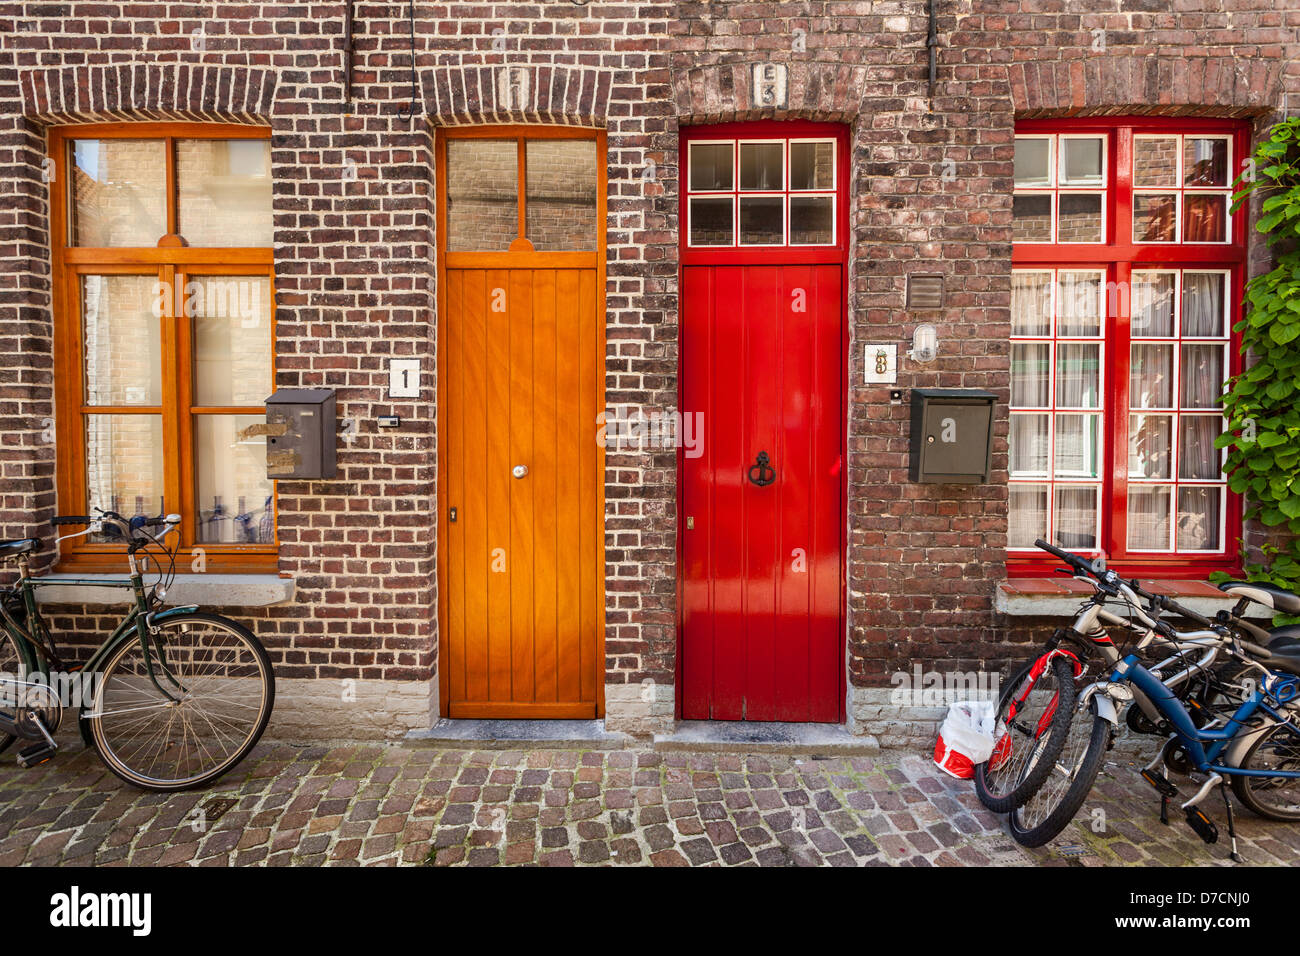 Doors of old houses and bicycles in european city. Bruges (Brugge), Belgium Stock Photo